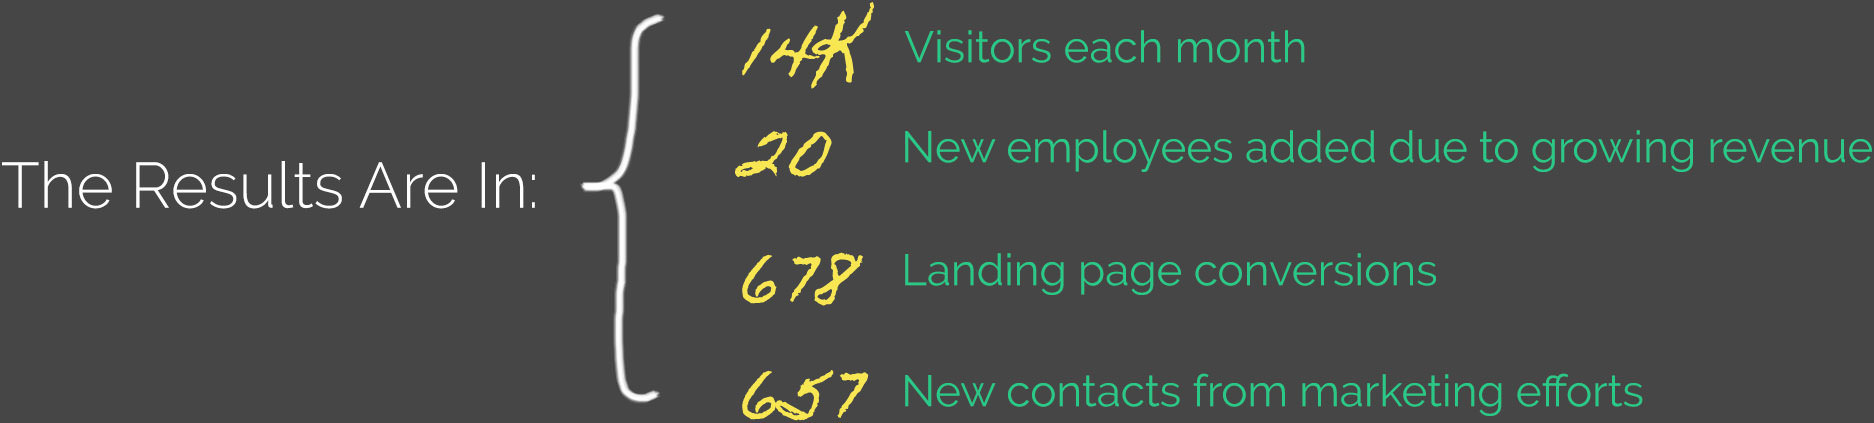 The Results Are In: 14k Visitors each month. 20 New employees added due to growing revenue. 678 Landing page conversions. 657 New contacts from marketing efforts.